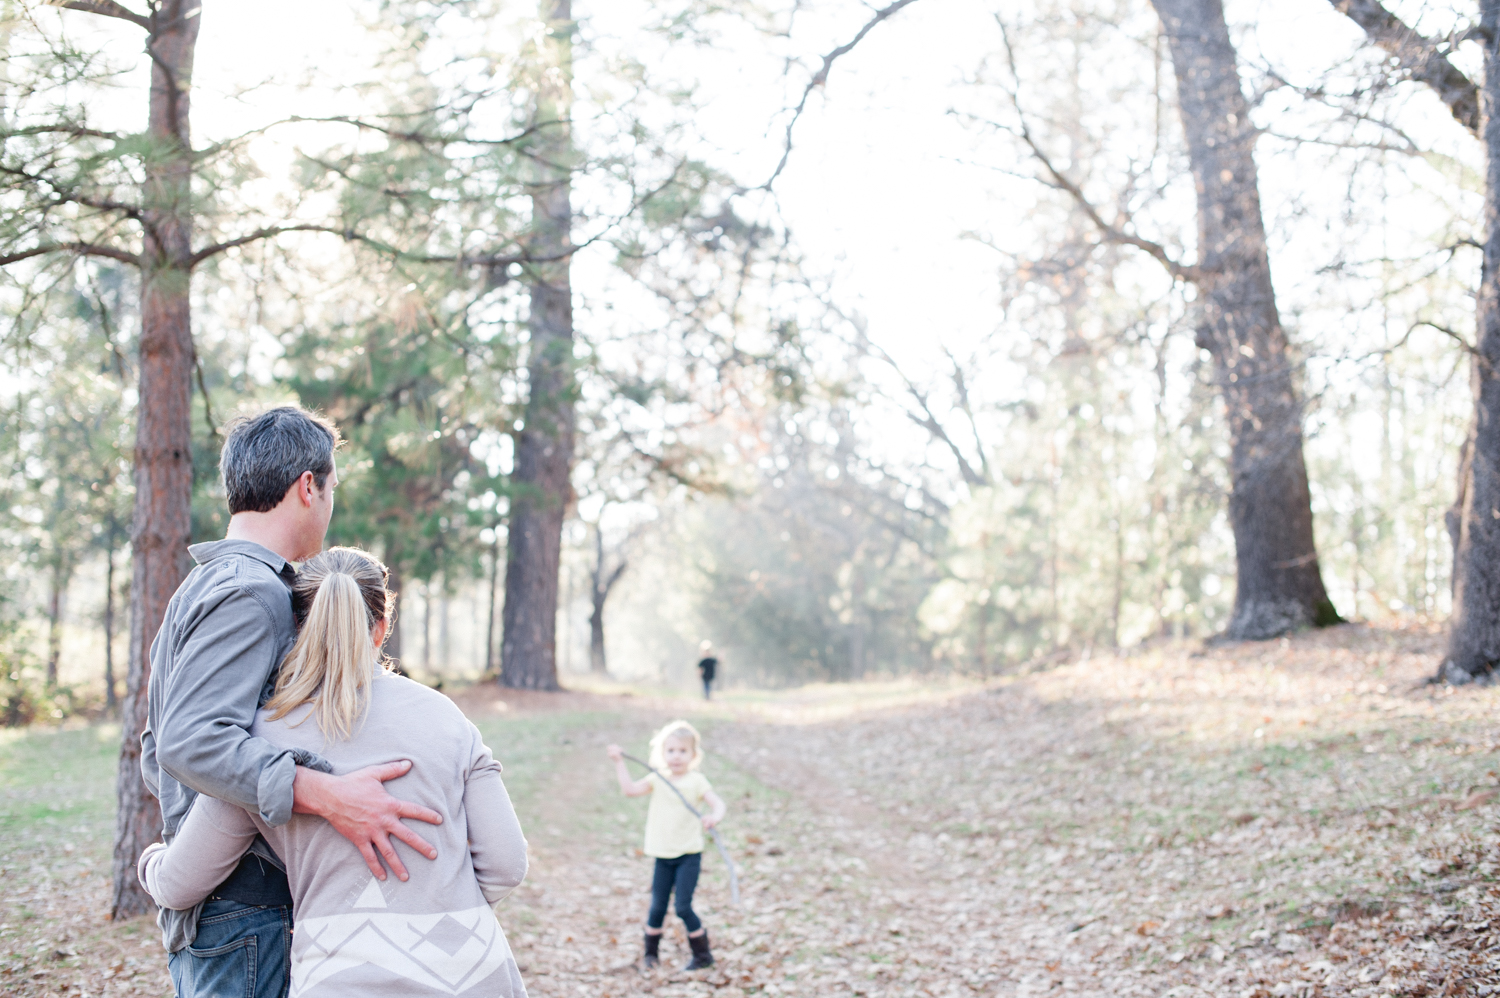 Lauren L. Photography - Family Lifestyle Photographer